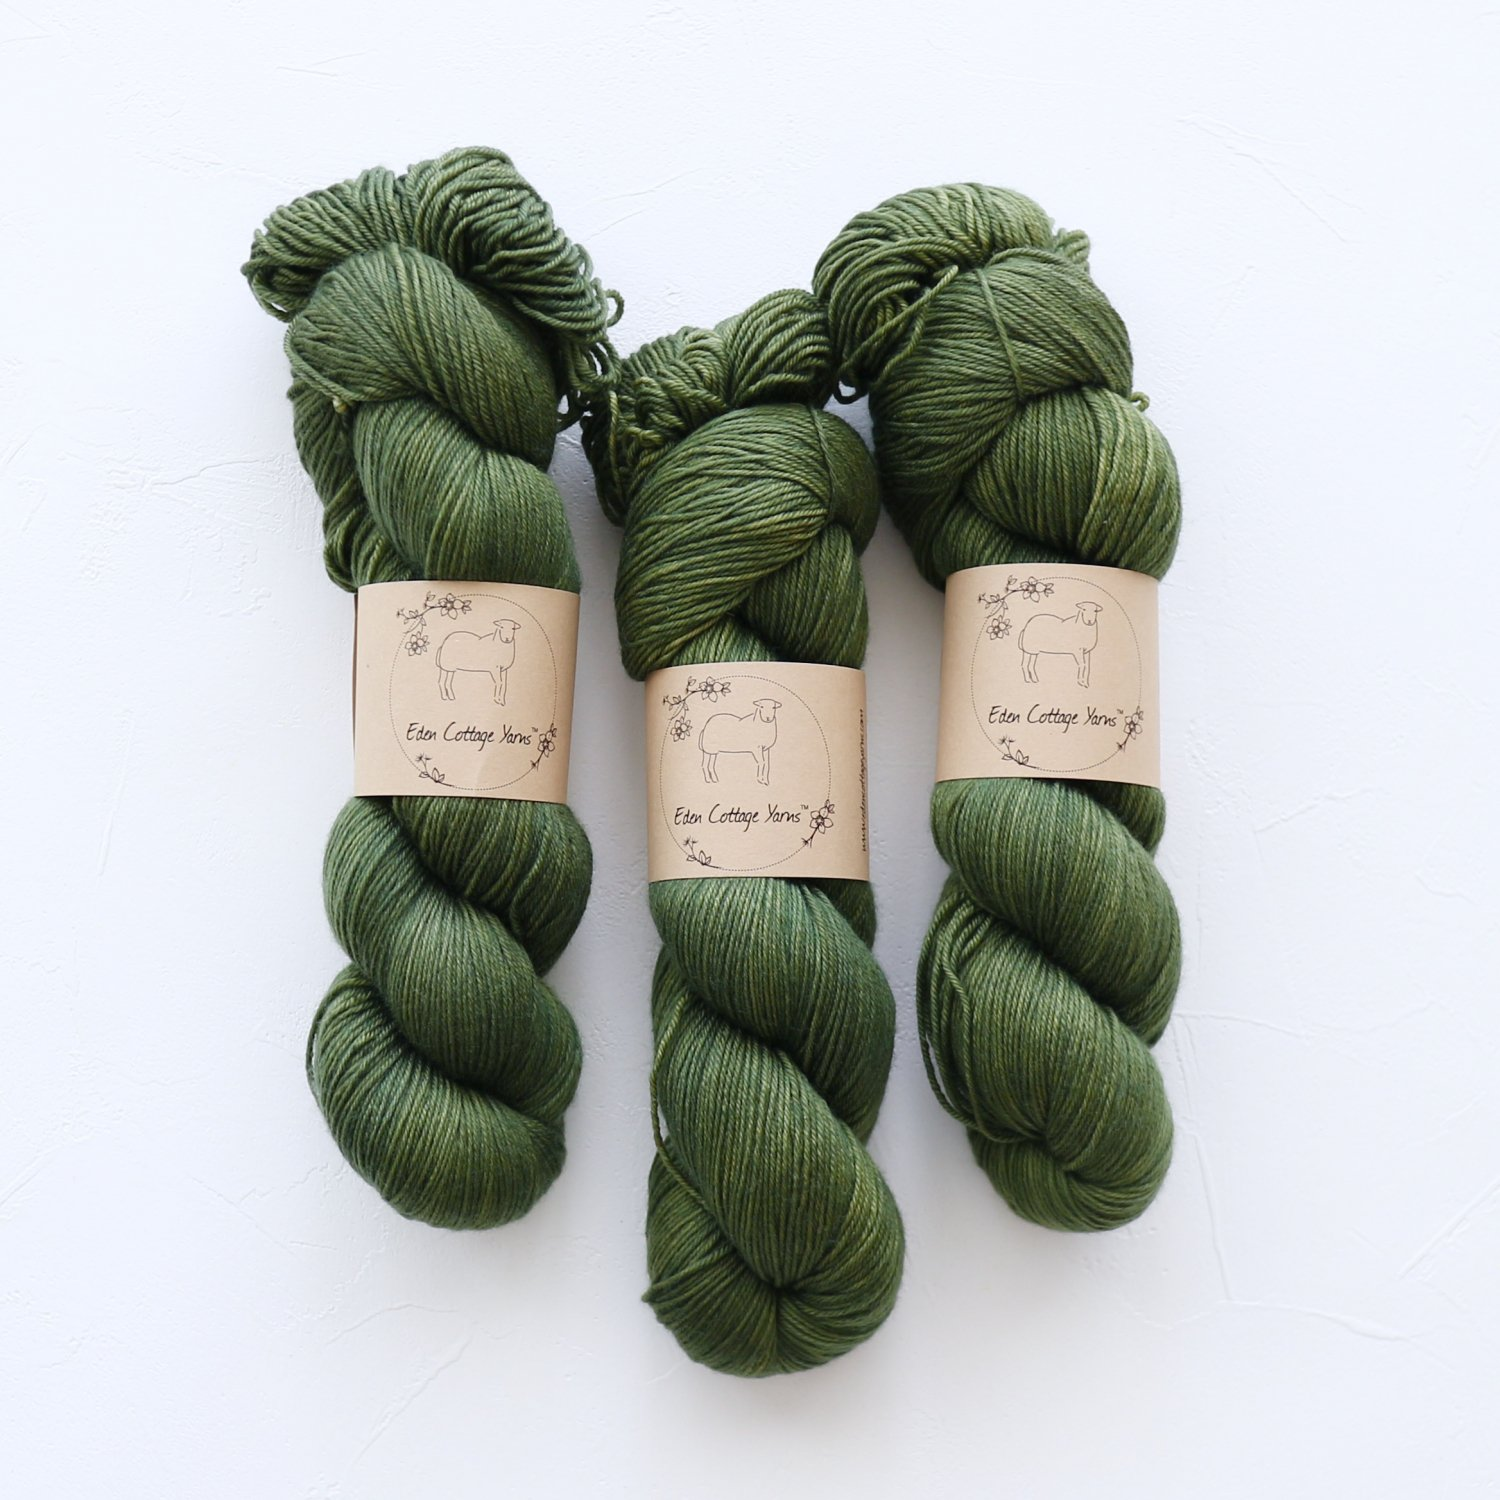 【Eden Cottage Yarns】<br>Pendle 4ply<br>Woodland